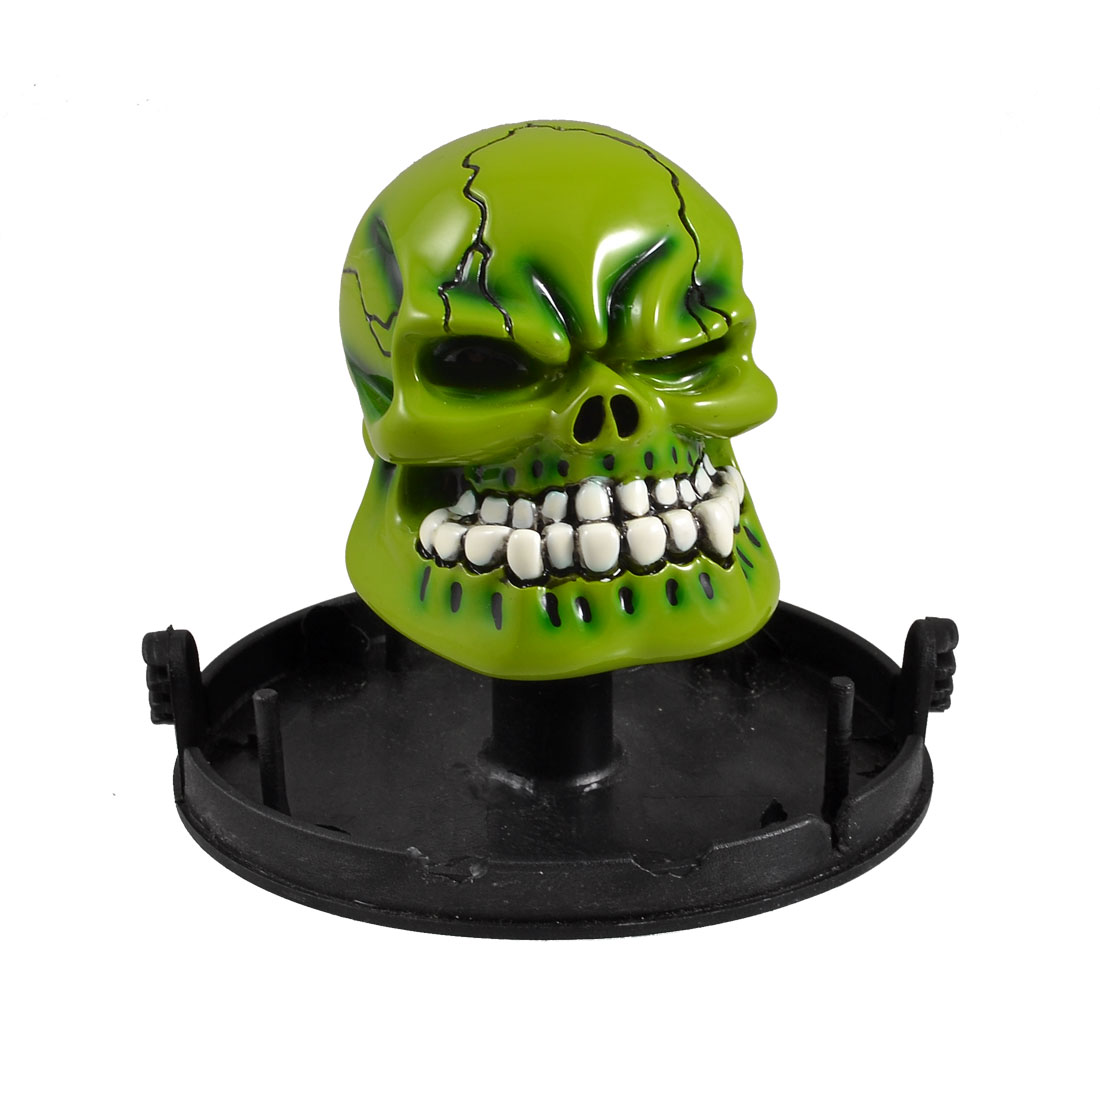 Auto Car Black Green Skull Head Design Ceramic Gear Shift Knob